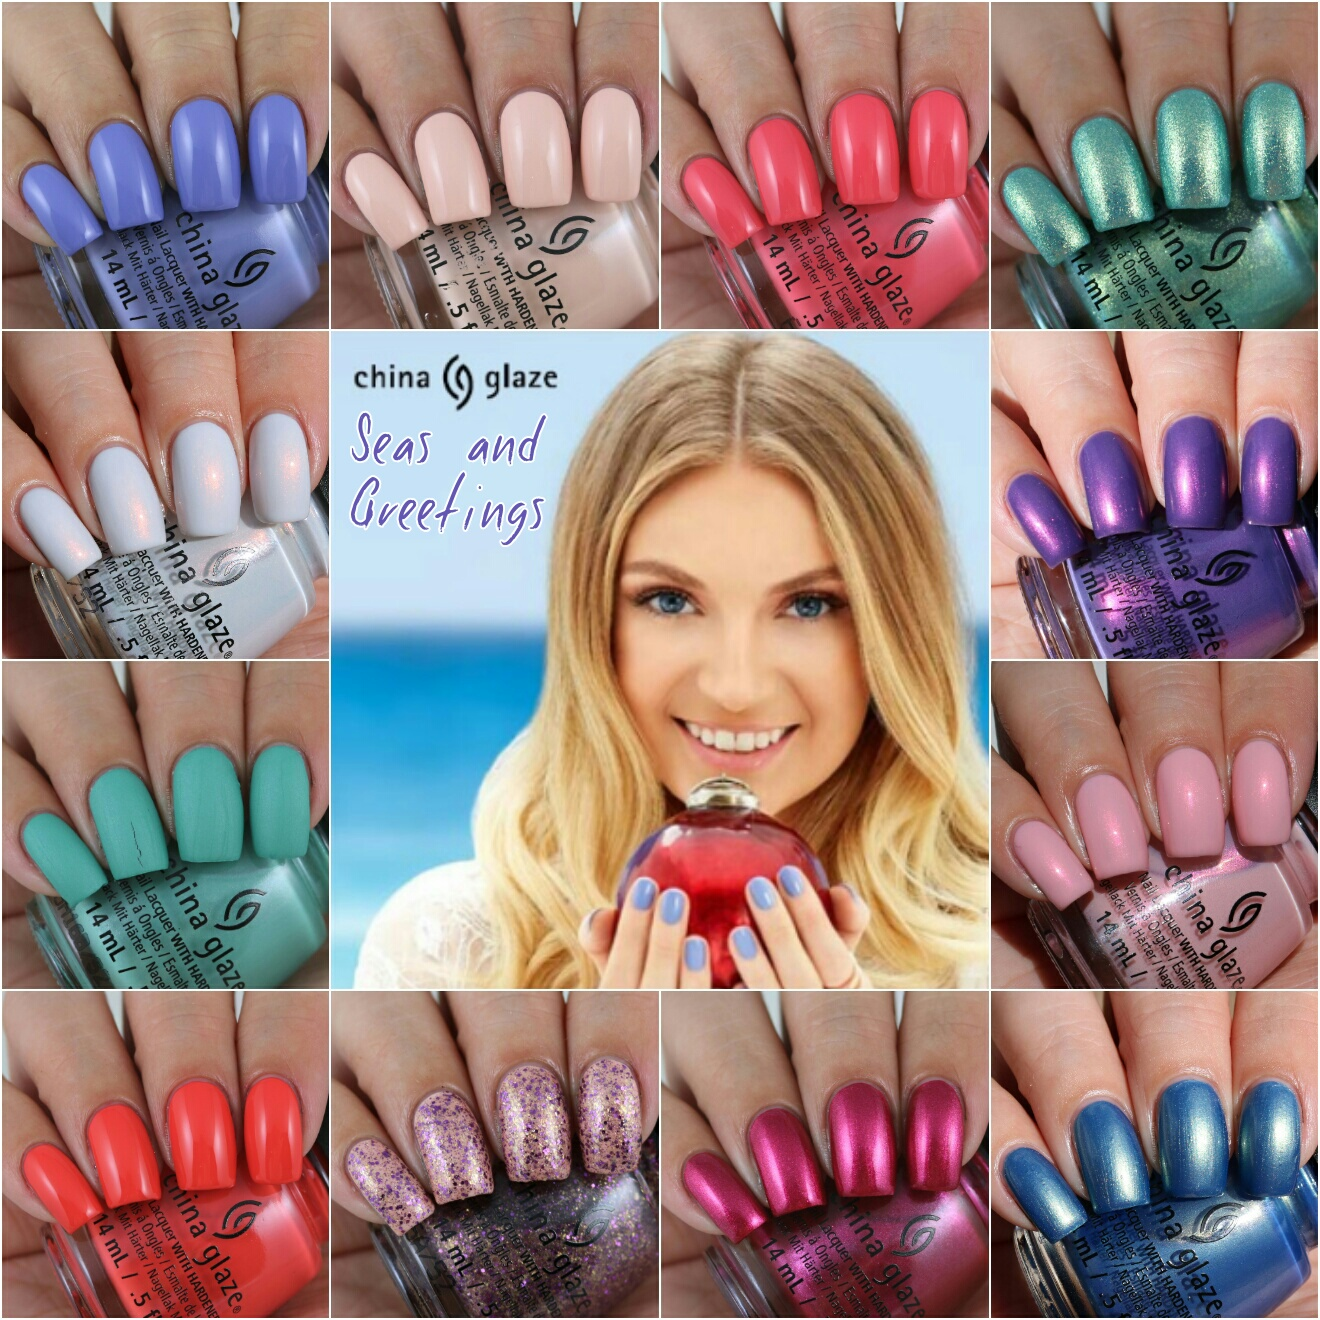 Olivia jade nails china glaze seas and greetings collection eat m4hsunfo